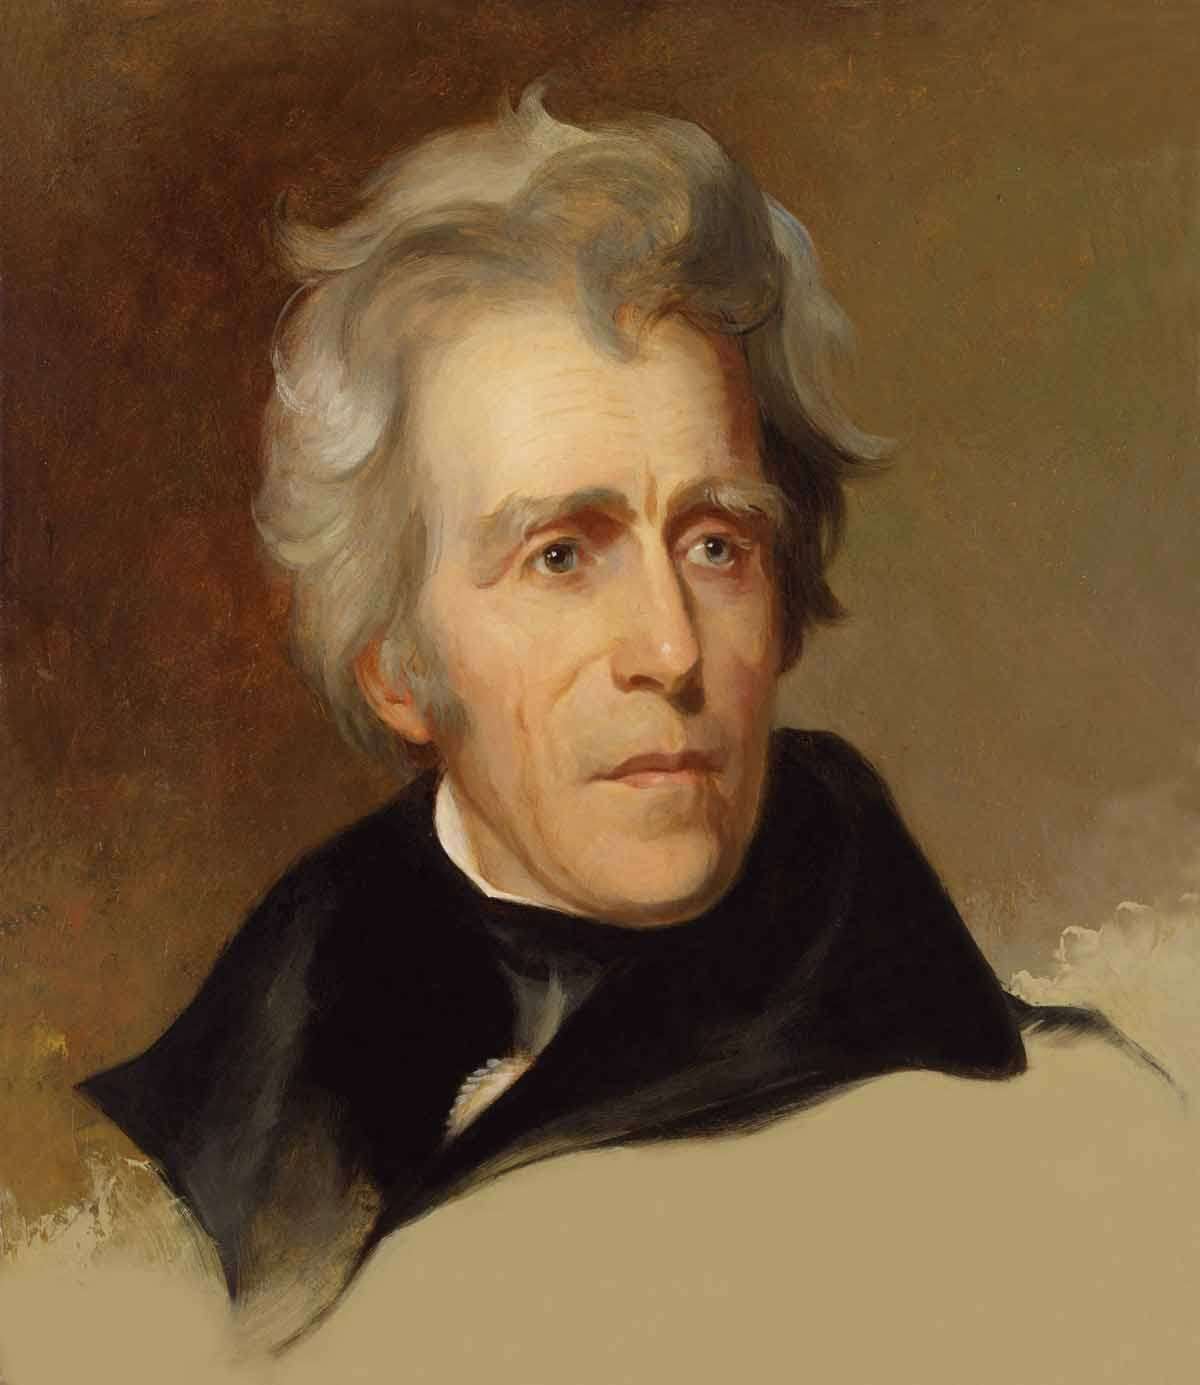 how andrew jackson is a common man Which description of andrew jackson is correct a declared war on england to avenge the burning of washington b defended the rights of indians and african americans c was the first common man elected president of the united states d granted the supreme court the power of judicial review.